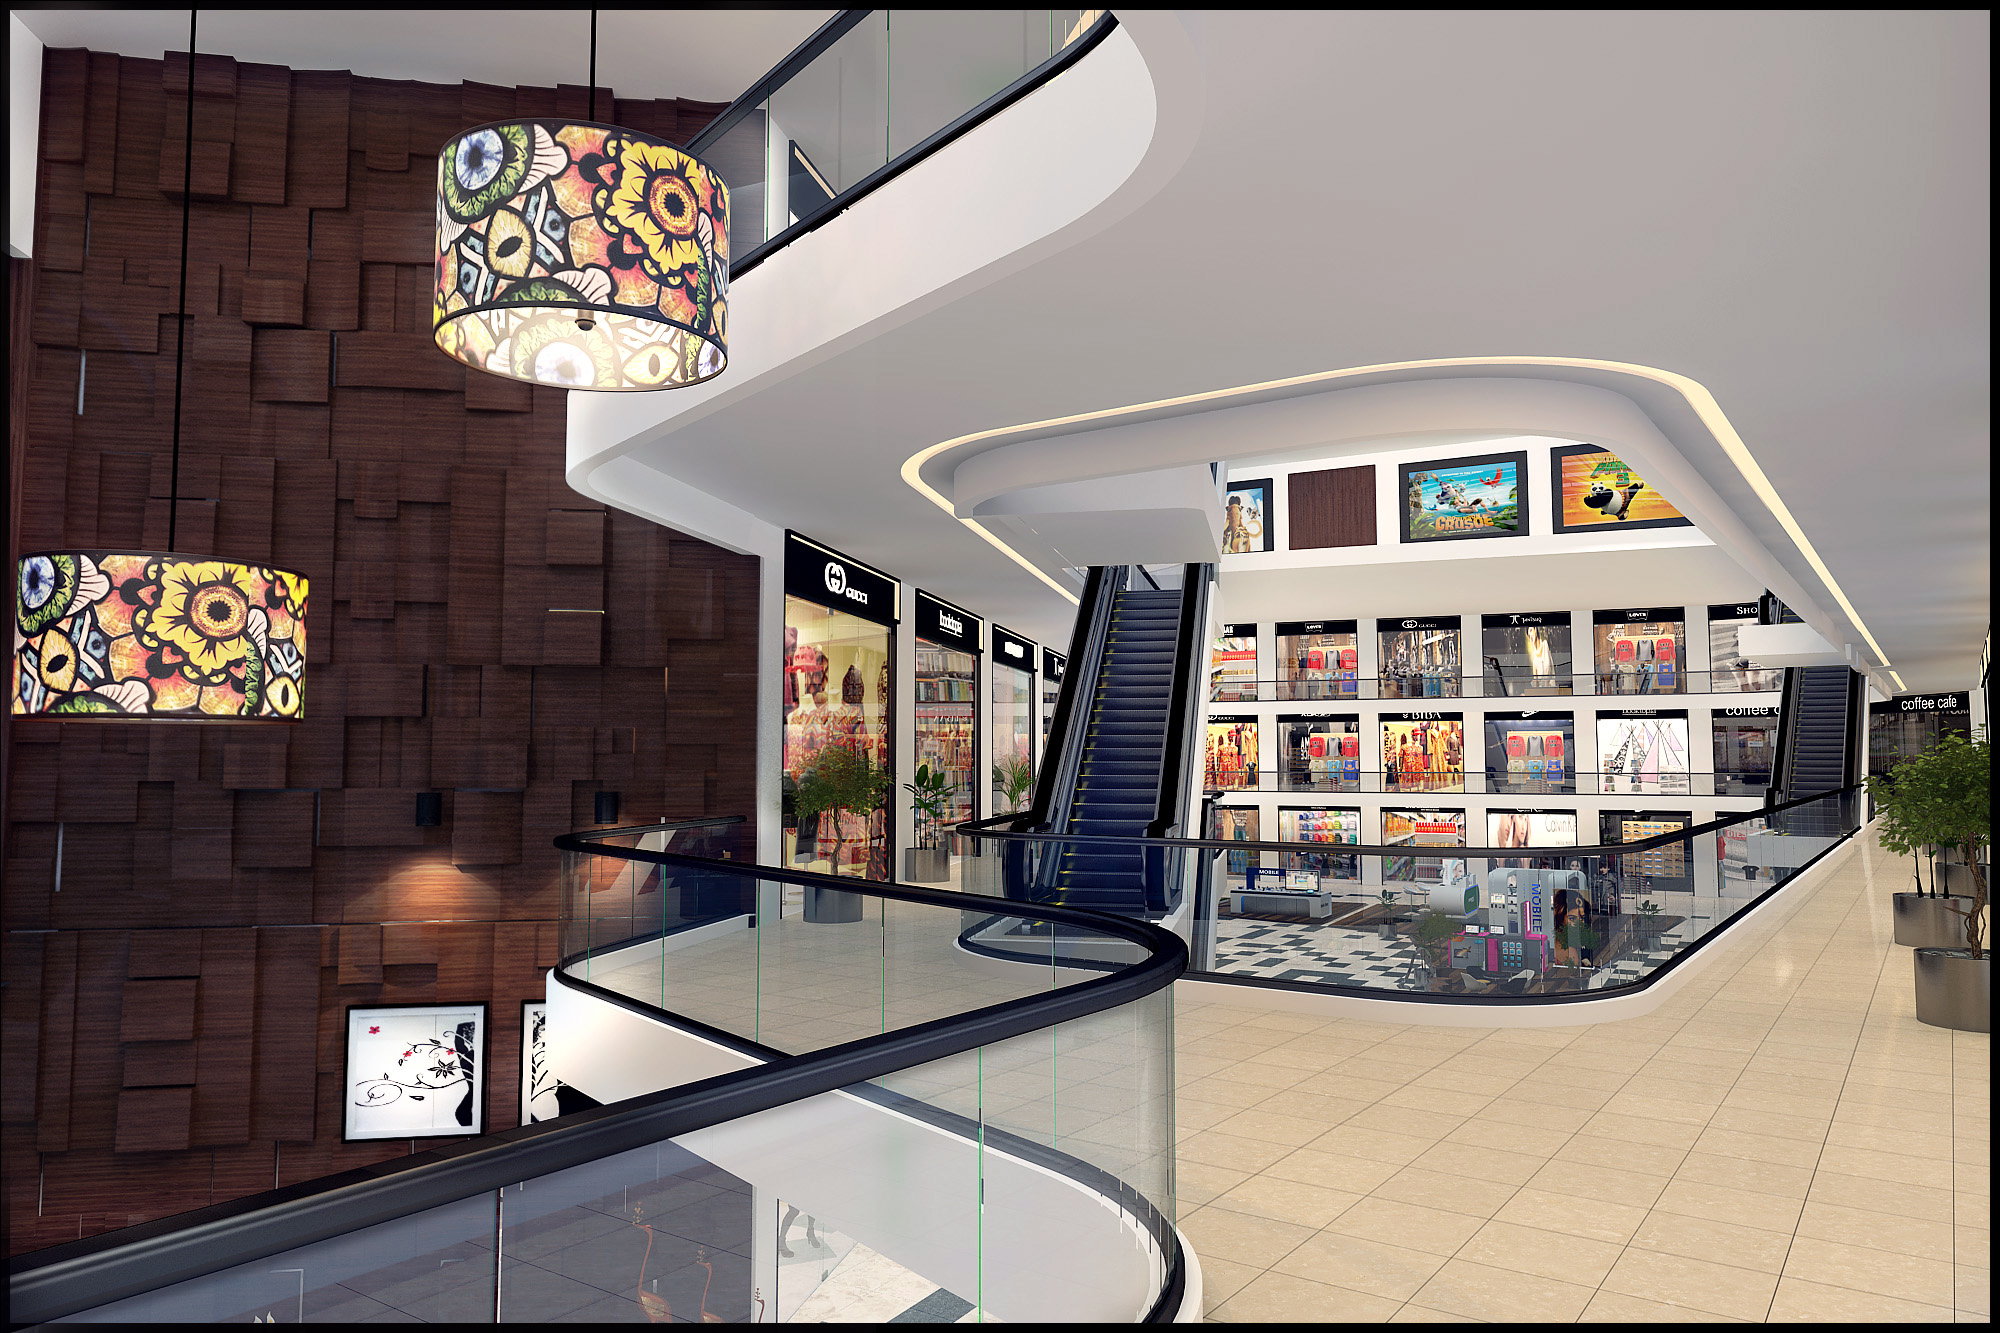 Interior Design Rendering For Commercial Shopping Mall